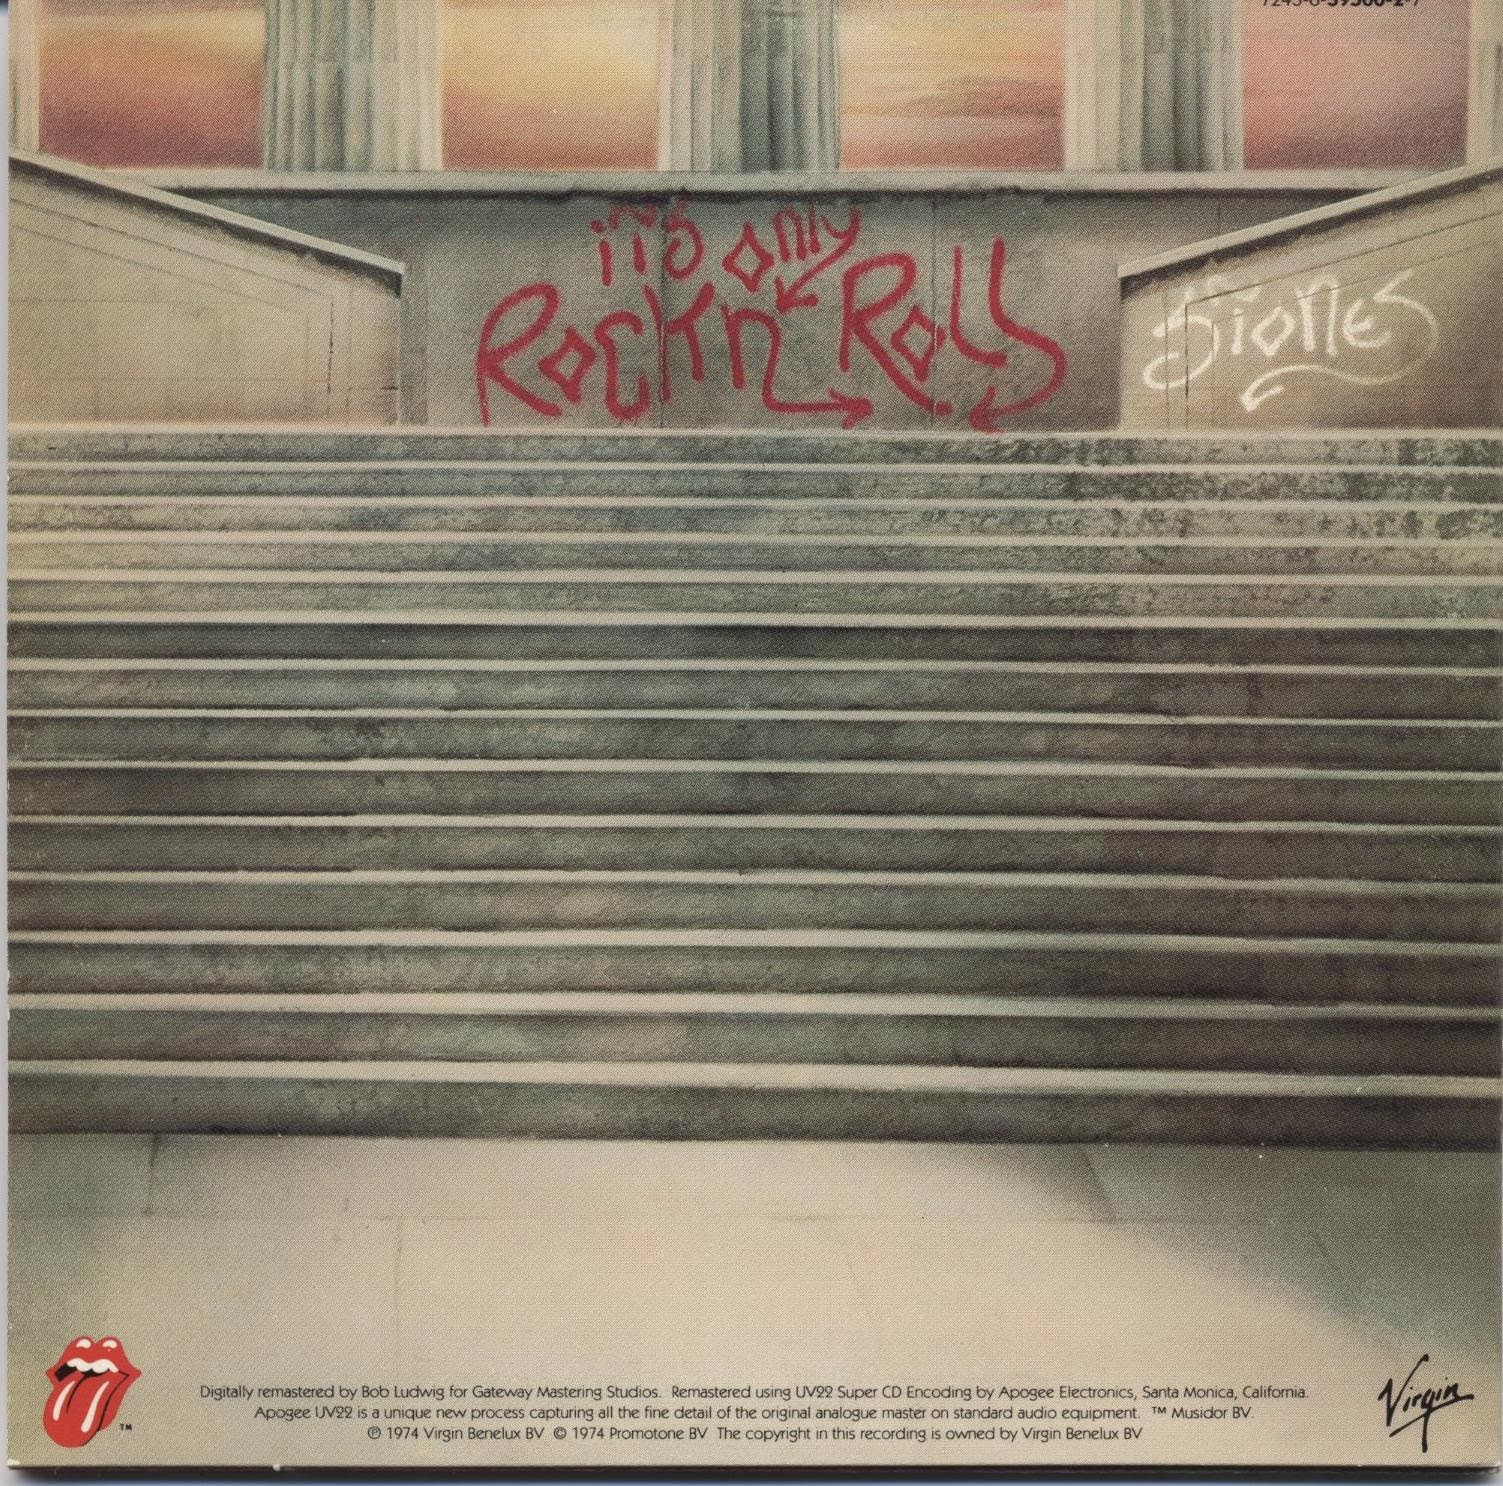 The Rolling Stones Its Only Rock And Roll It s only rock n roll - cdRolling Stones Its Only Rock And Roll